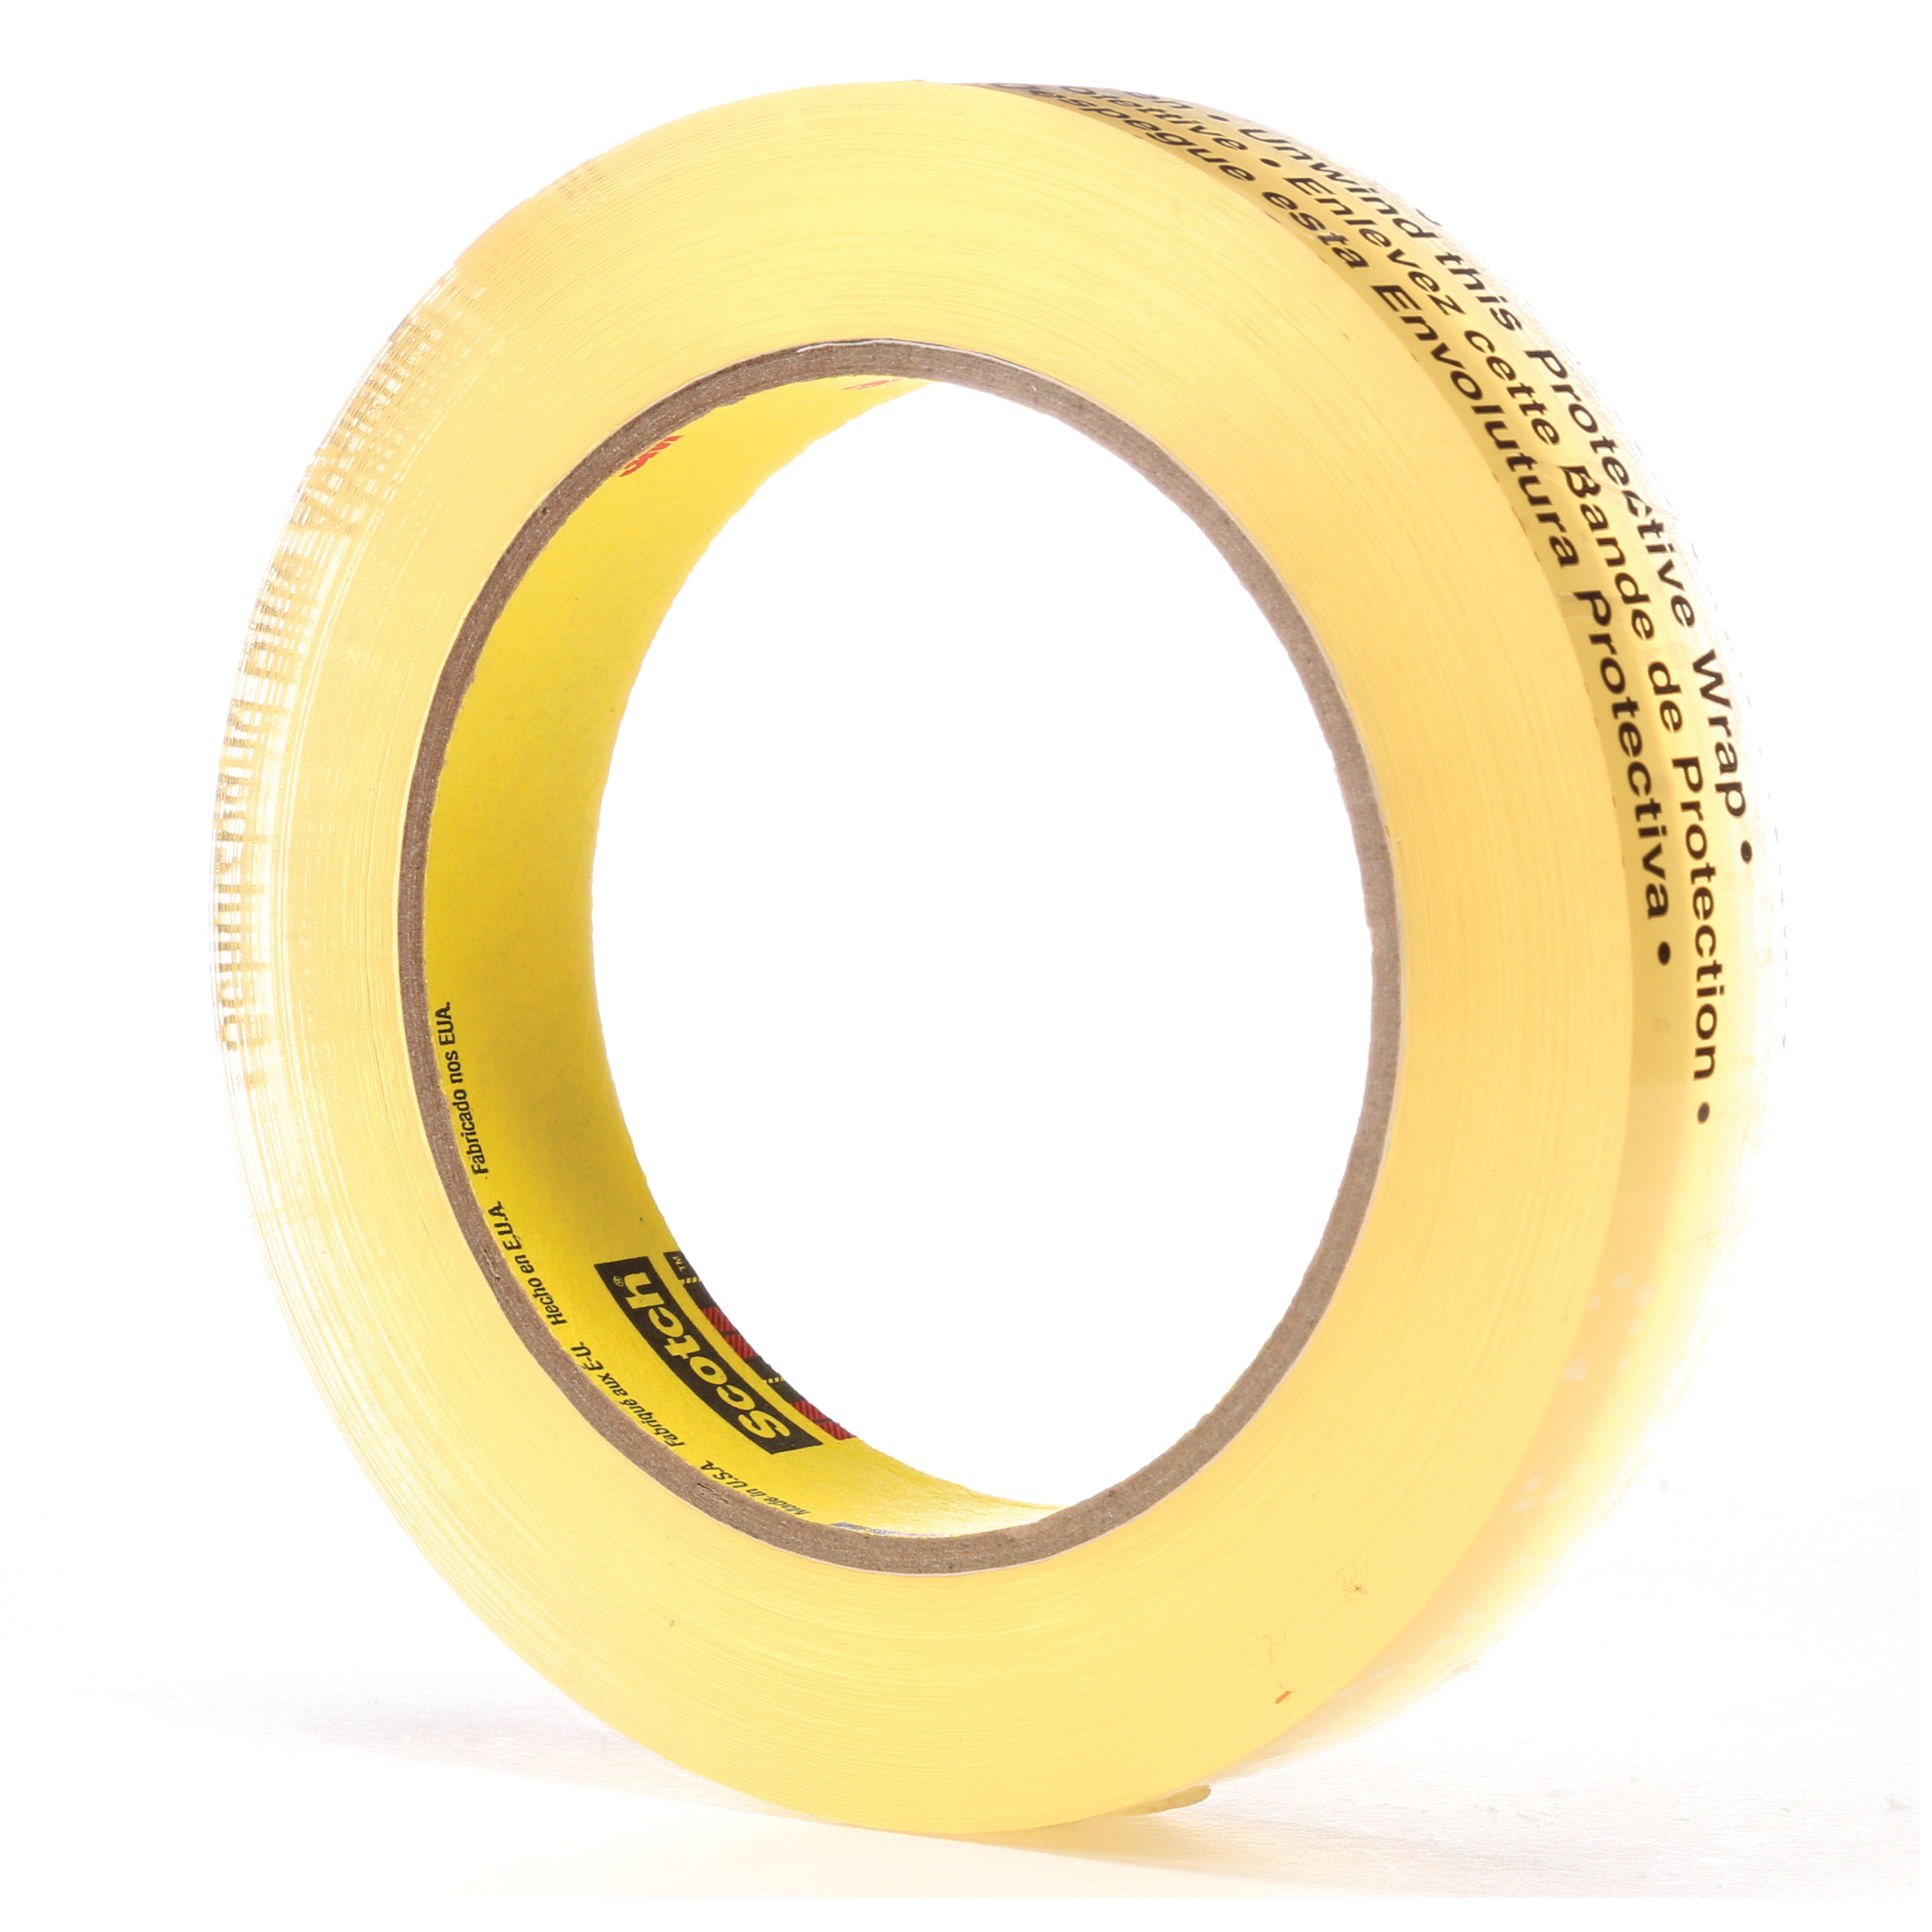 3M™ 021200-04036 Removable Double Coated Repositionable Tape, 72 yd L x 3/4 in W, 3.8 mil THK, Acrylic Adhesive, UPVC Backing, Clear